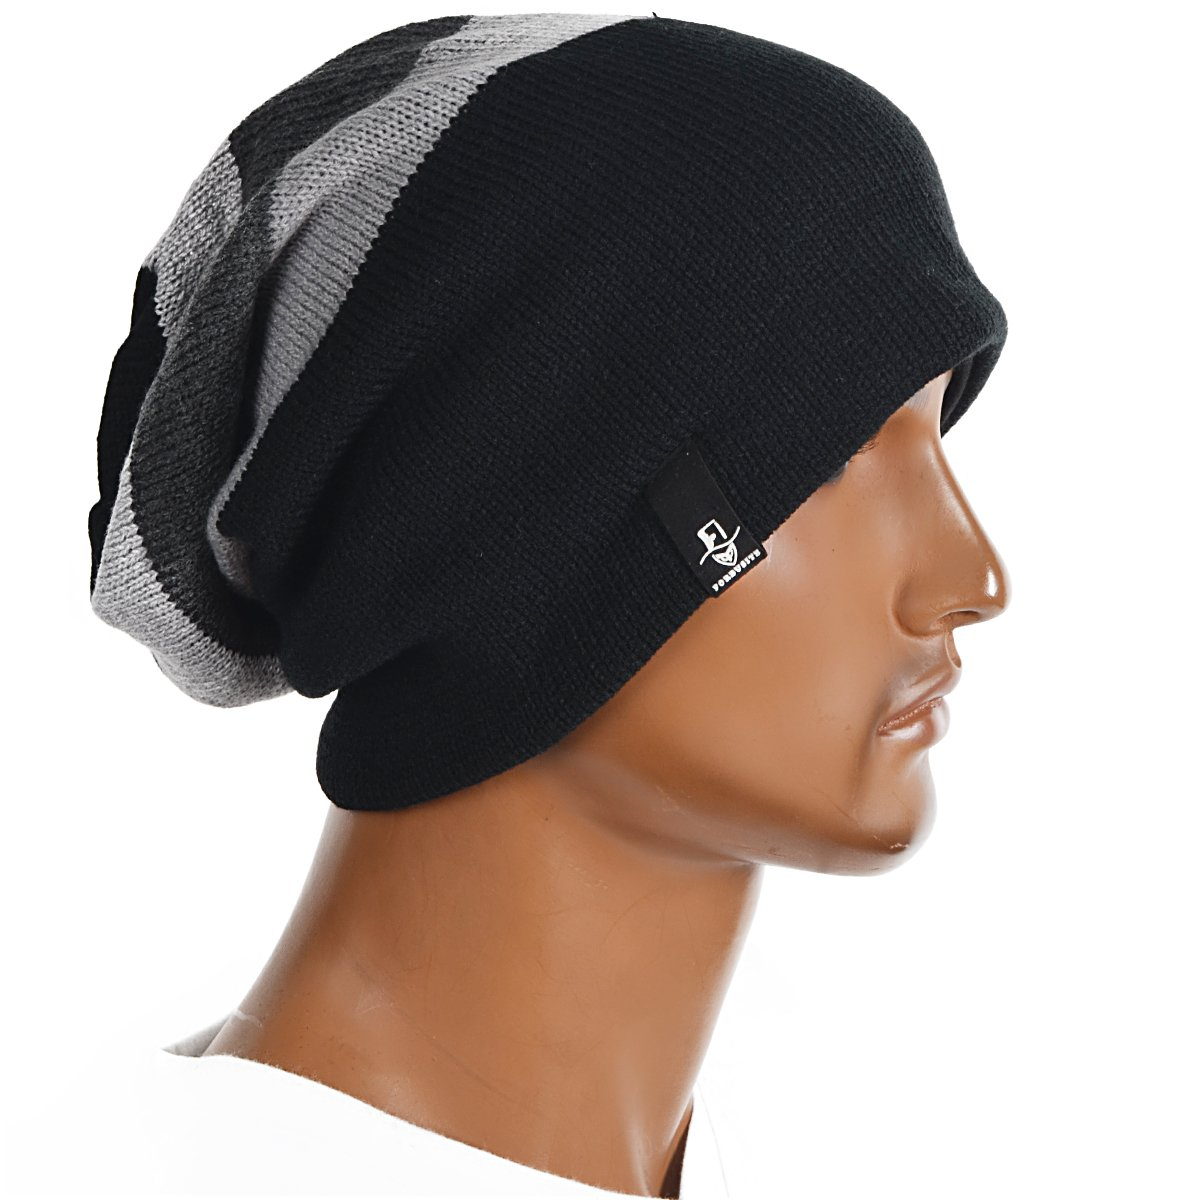 f4d8720a208 FORBUSITE Beany Winter Summer Men s and Women s Slouch Beanie Hat B08 -  Multicolour - 55 58 cm  Amazon.co.uk  Clothing